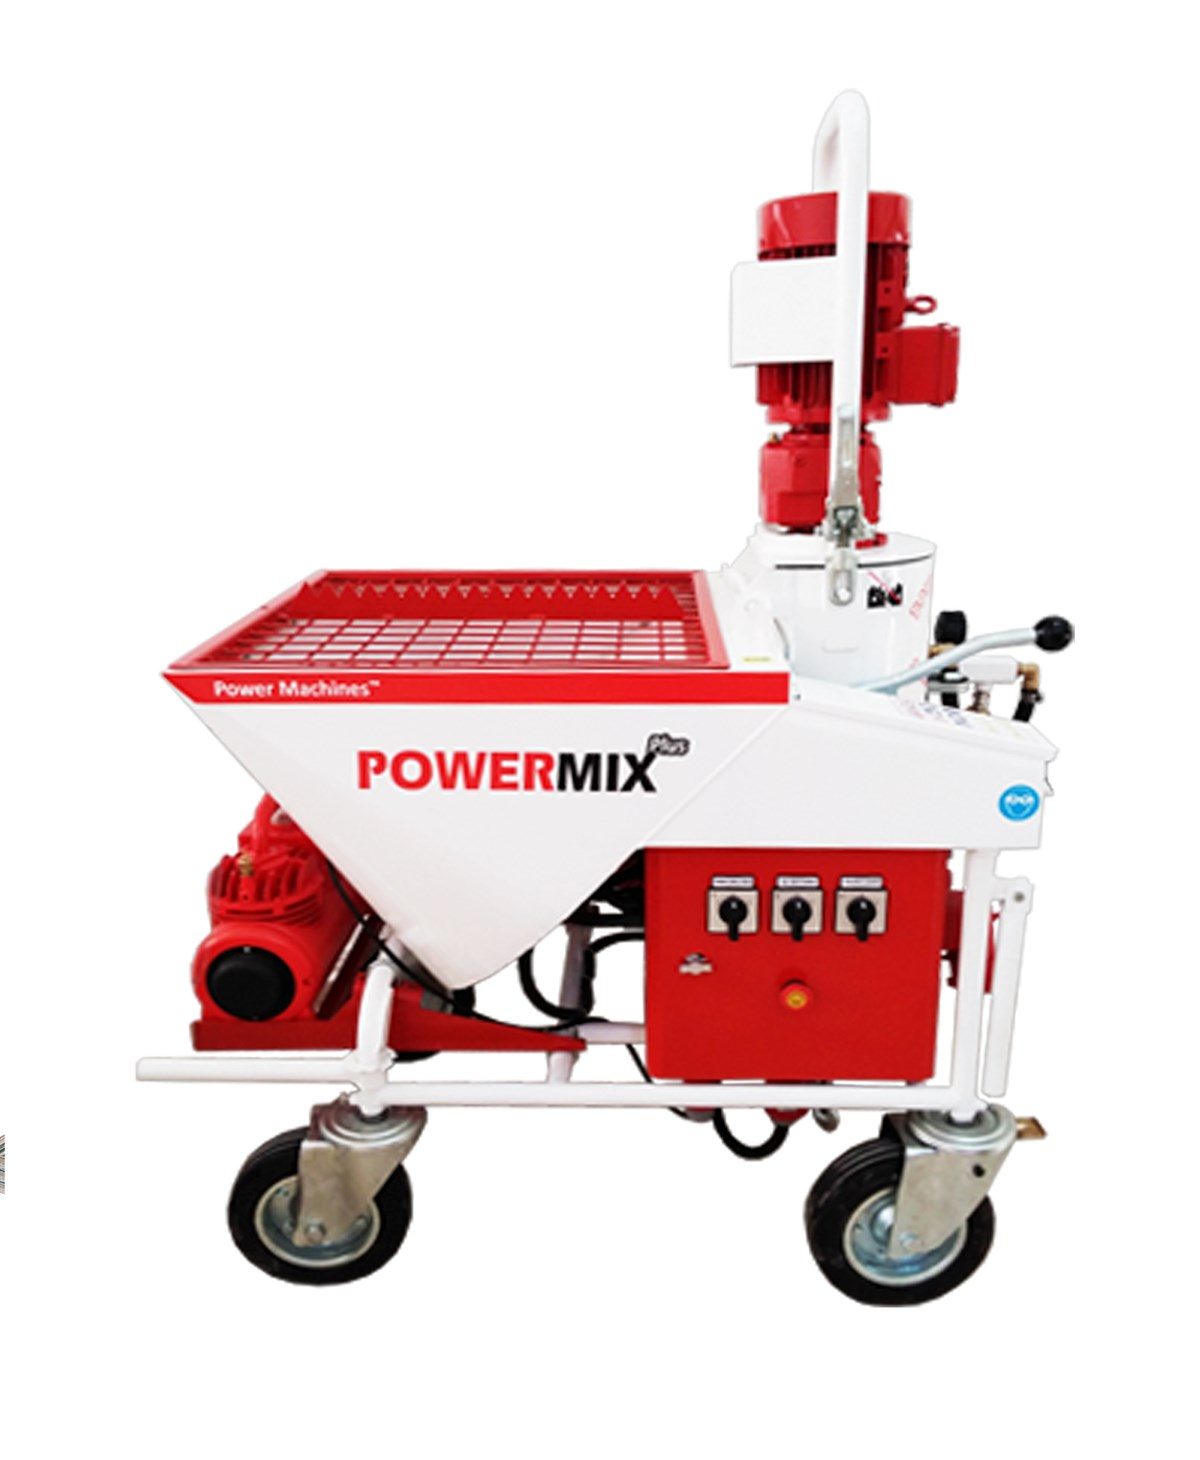 Powermix Plus Alçı Sıva Makinesi